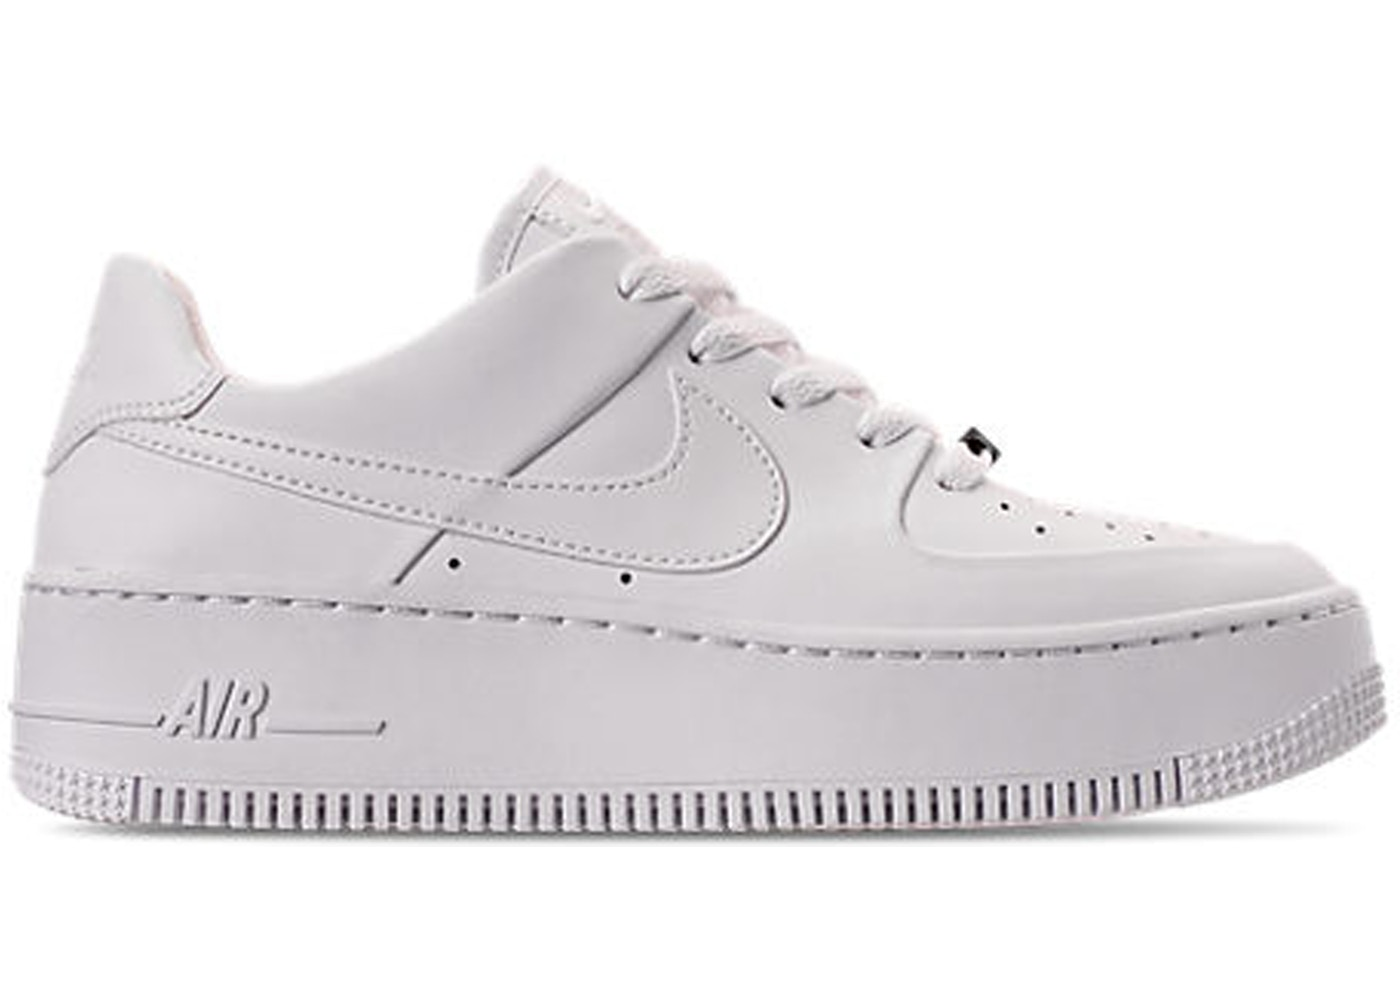 timeless design ed9f3 cef12 Buy Nike Air Force 1 Shoes   Deadstock Sneakers